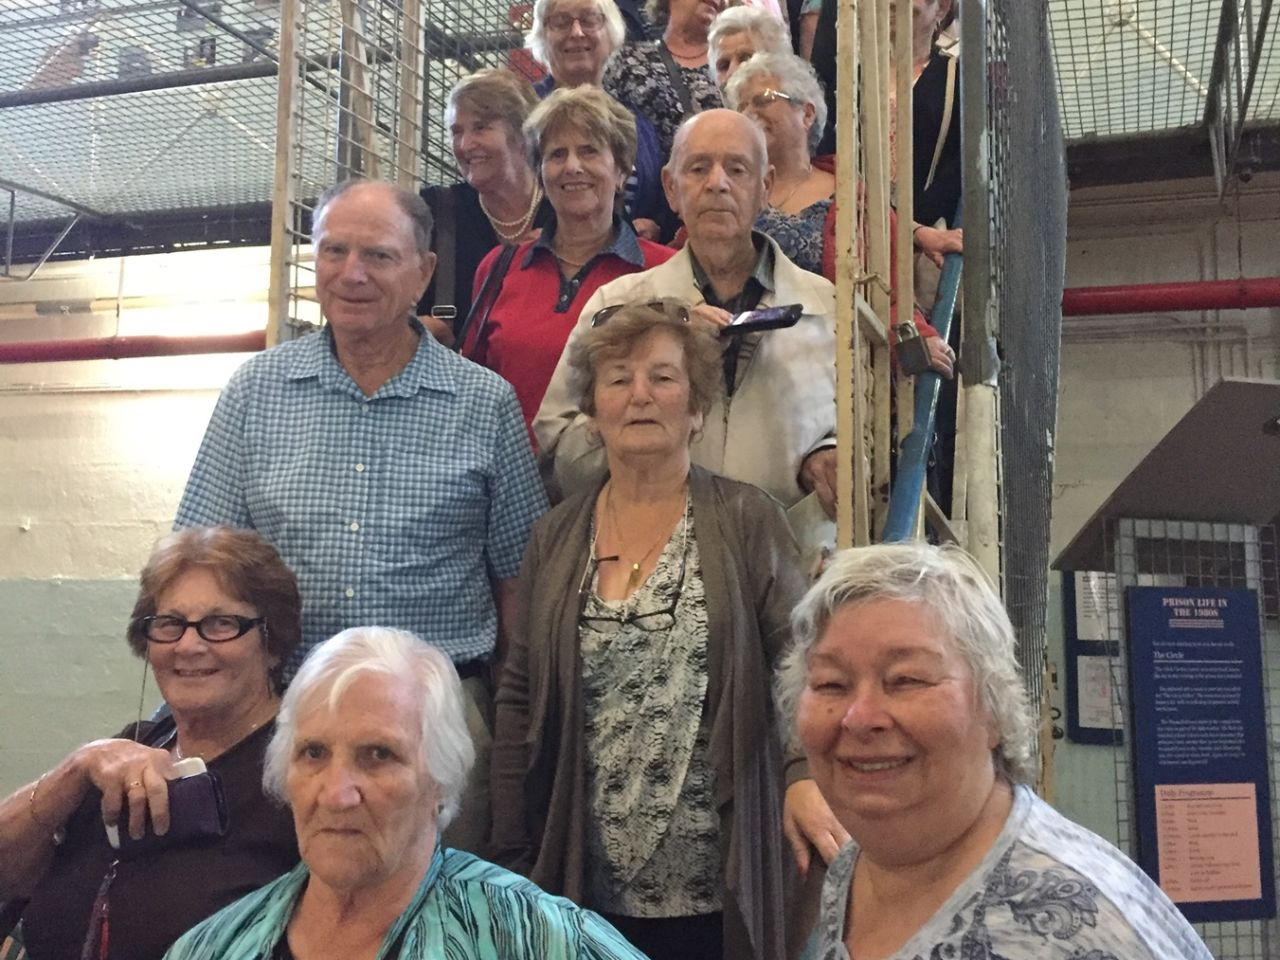 Visit to Old Geelong Gaol